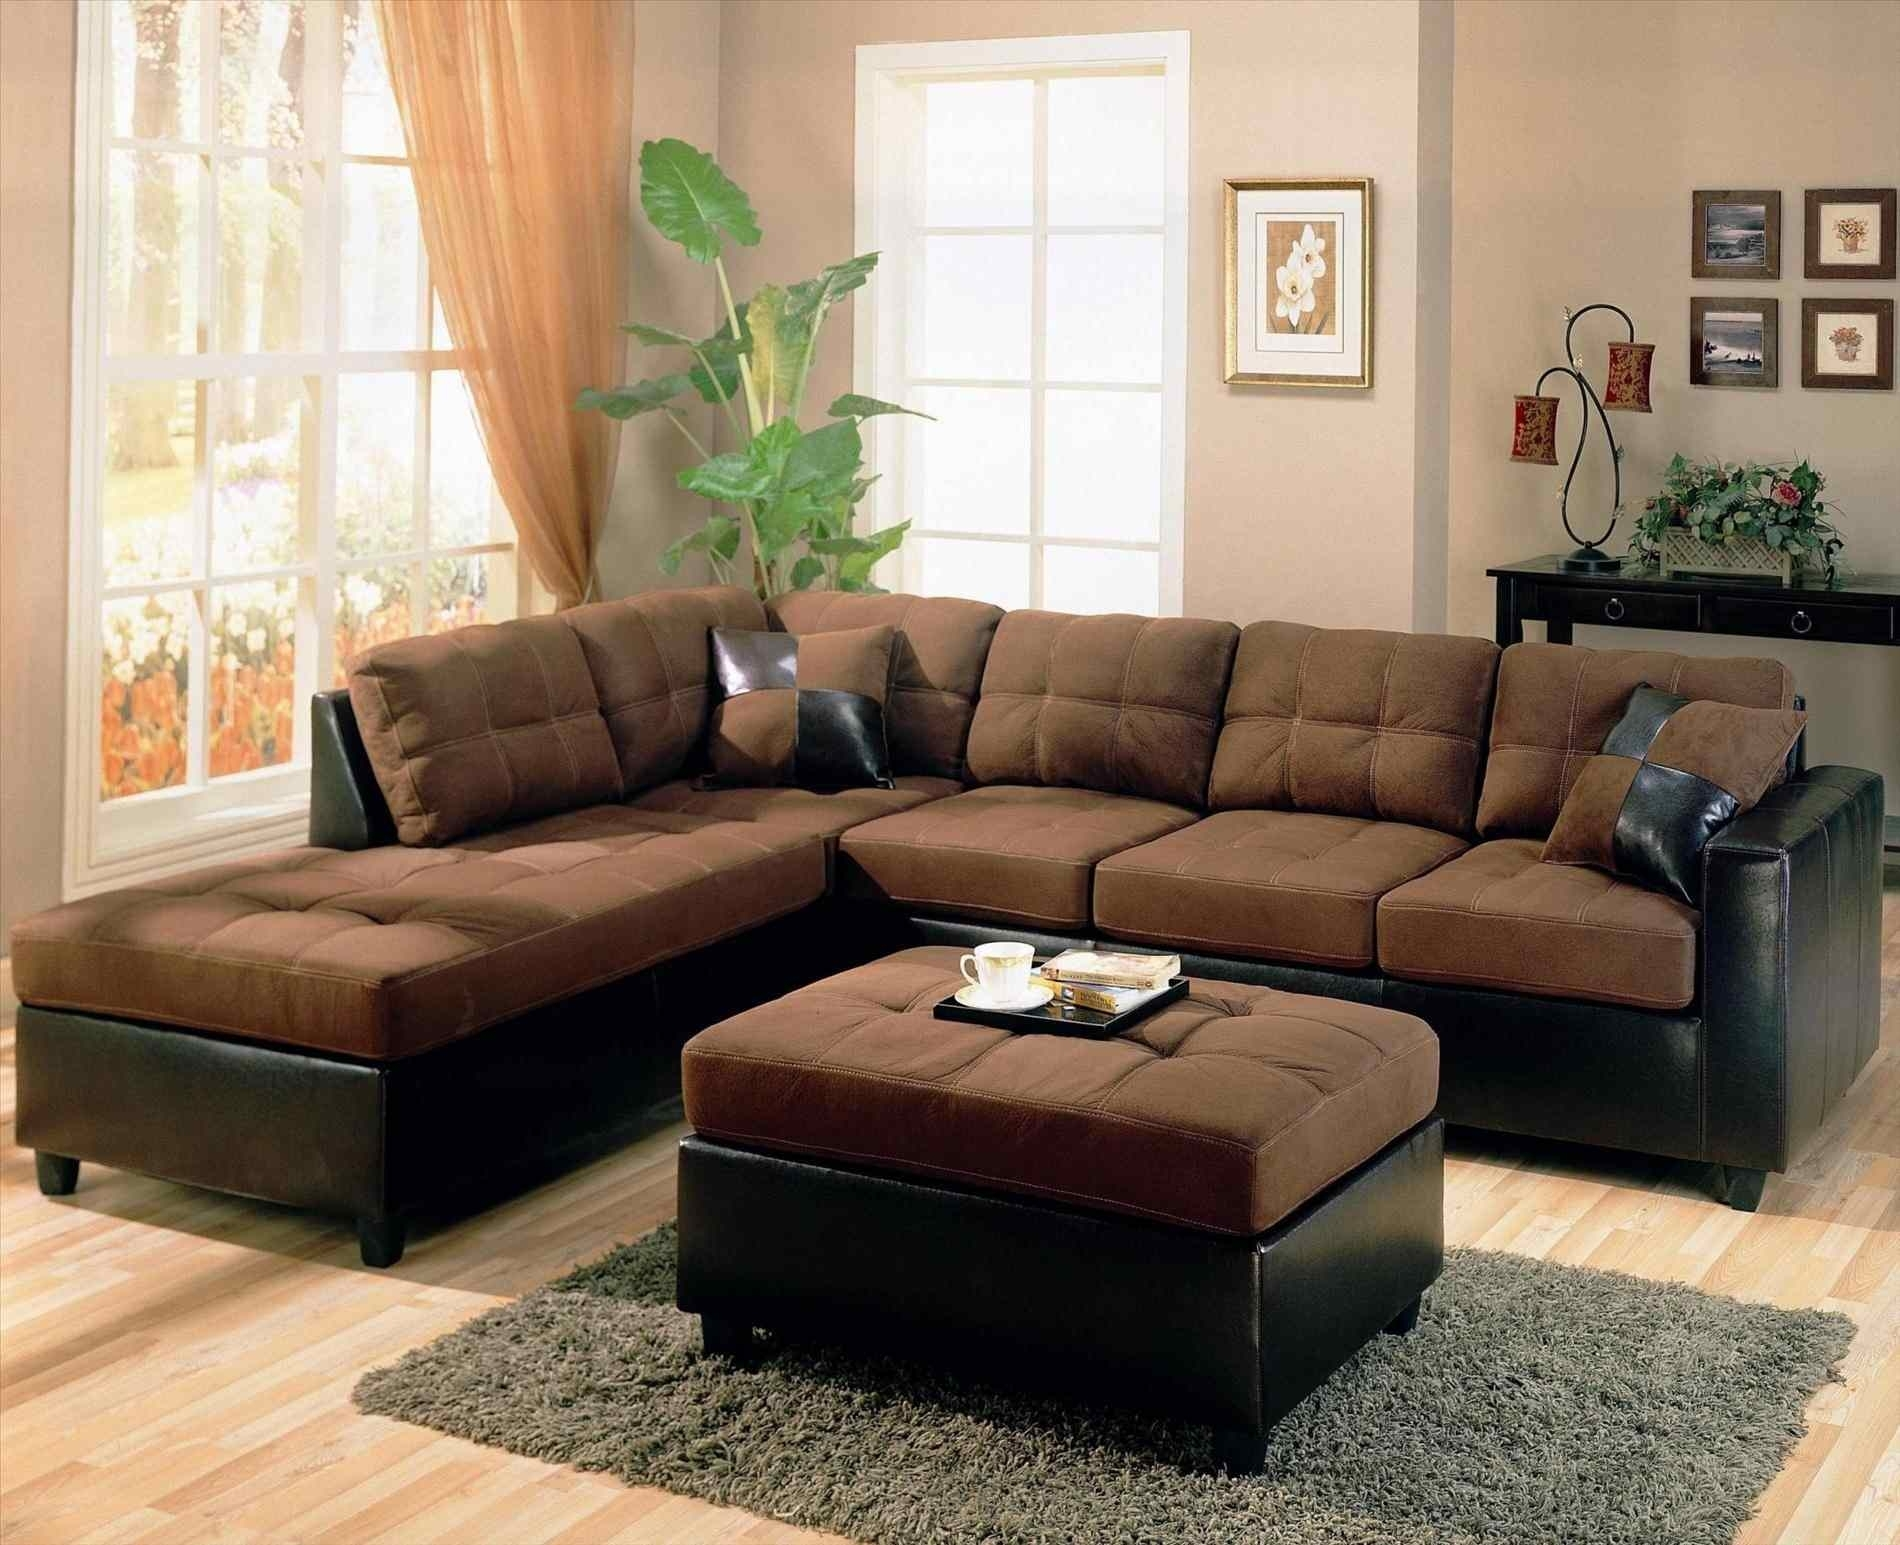 Sofa : Long S Chicago Cleanupfloridacom S Backless Sectional Sofa intended for Sectional Sofas At Chicago (Image 12 of 15)